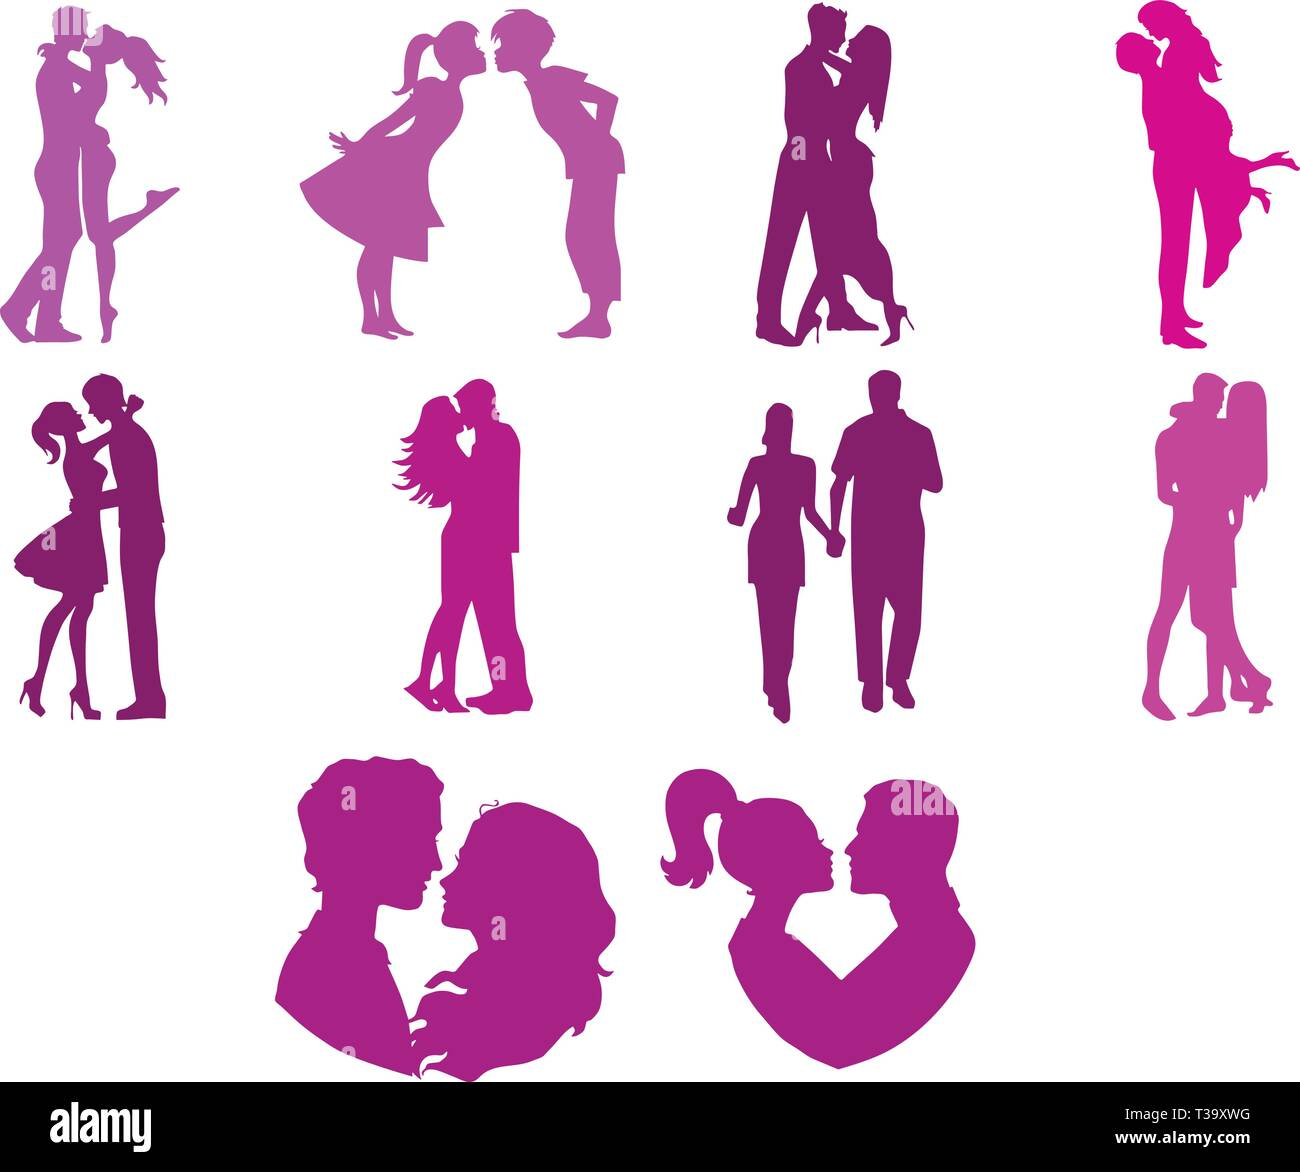 Valentine's Day Love Couple Collection Photo Stock